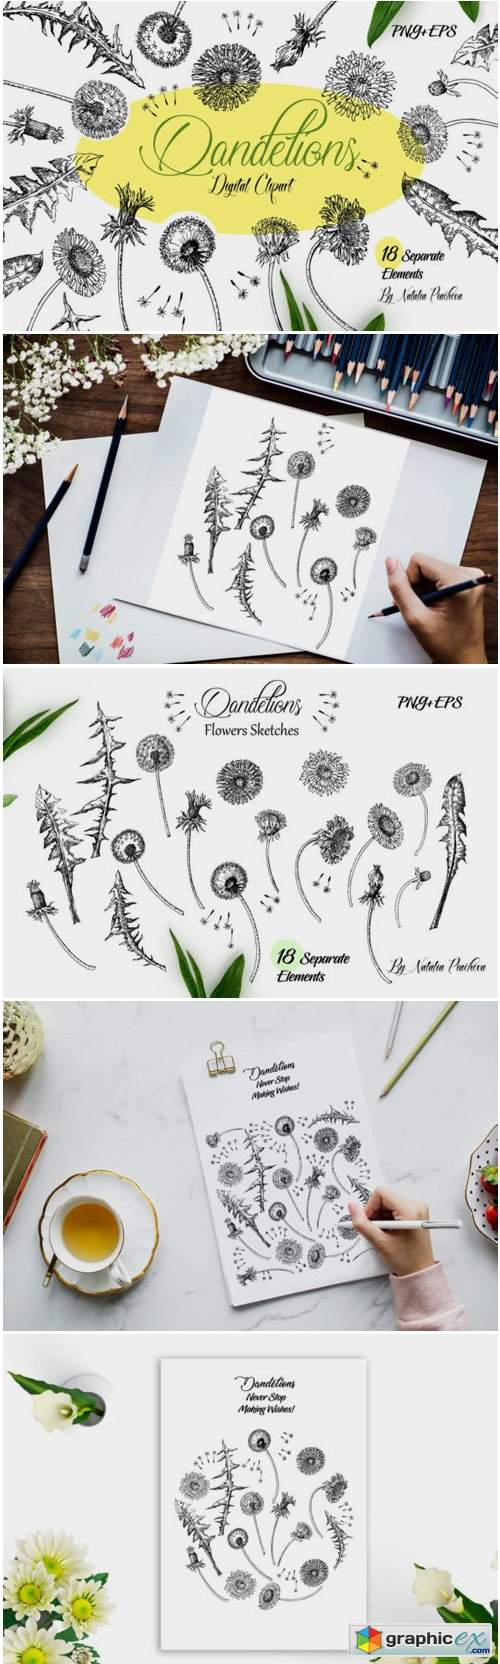 Dandelions Sketches Clipart